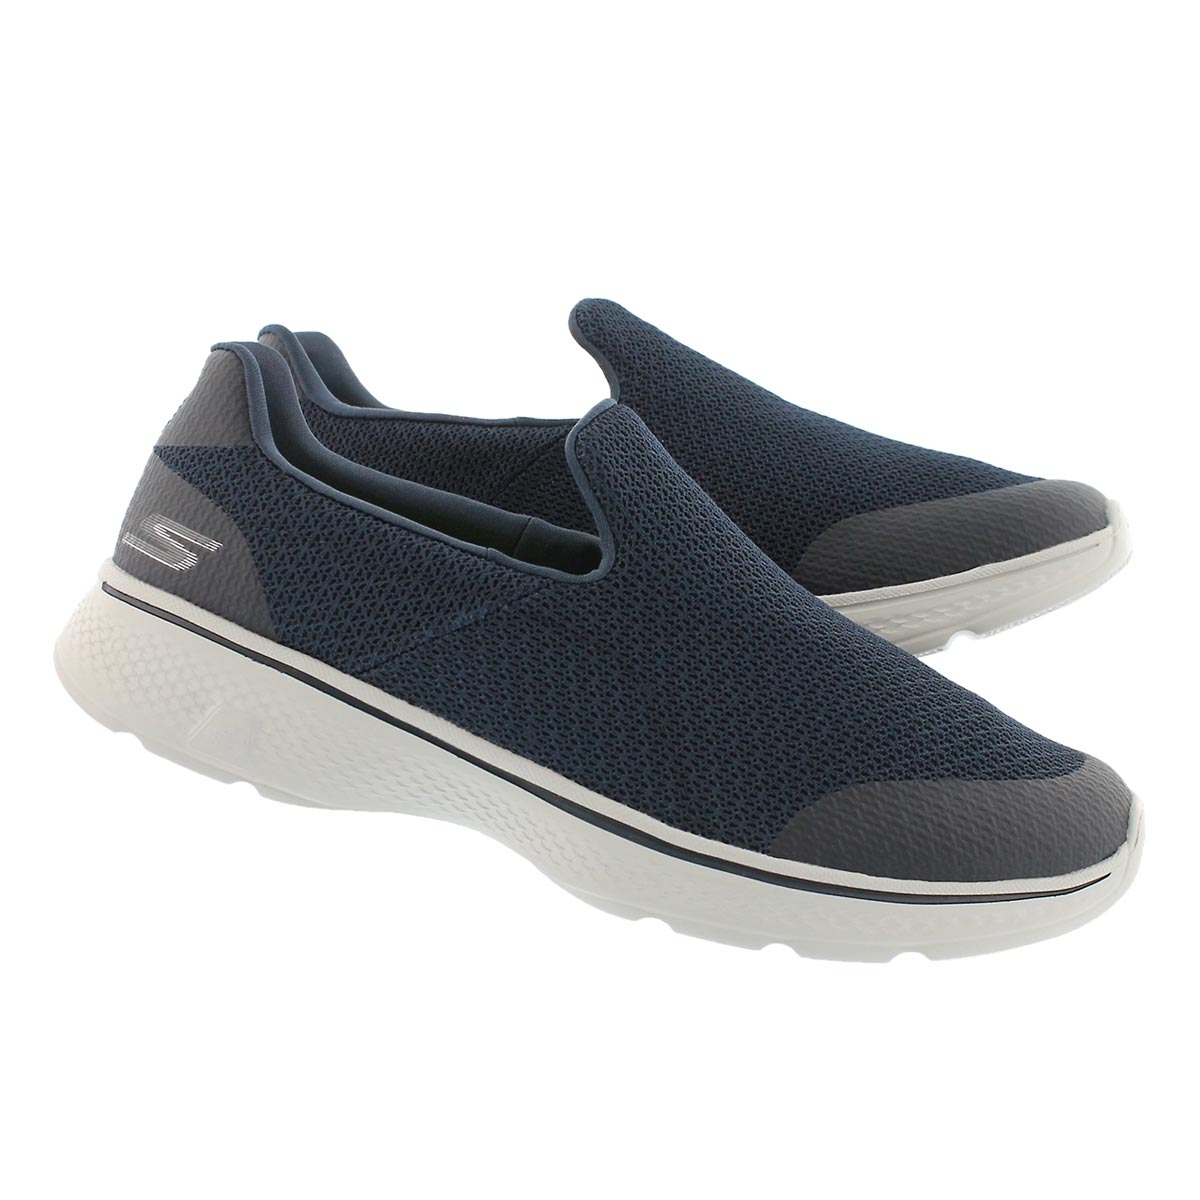 Mns GOwalk 4 Expert nvy/gry slip on shoe